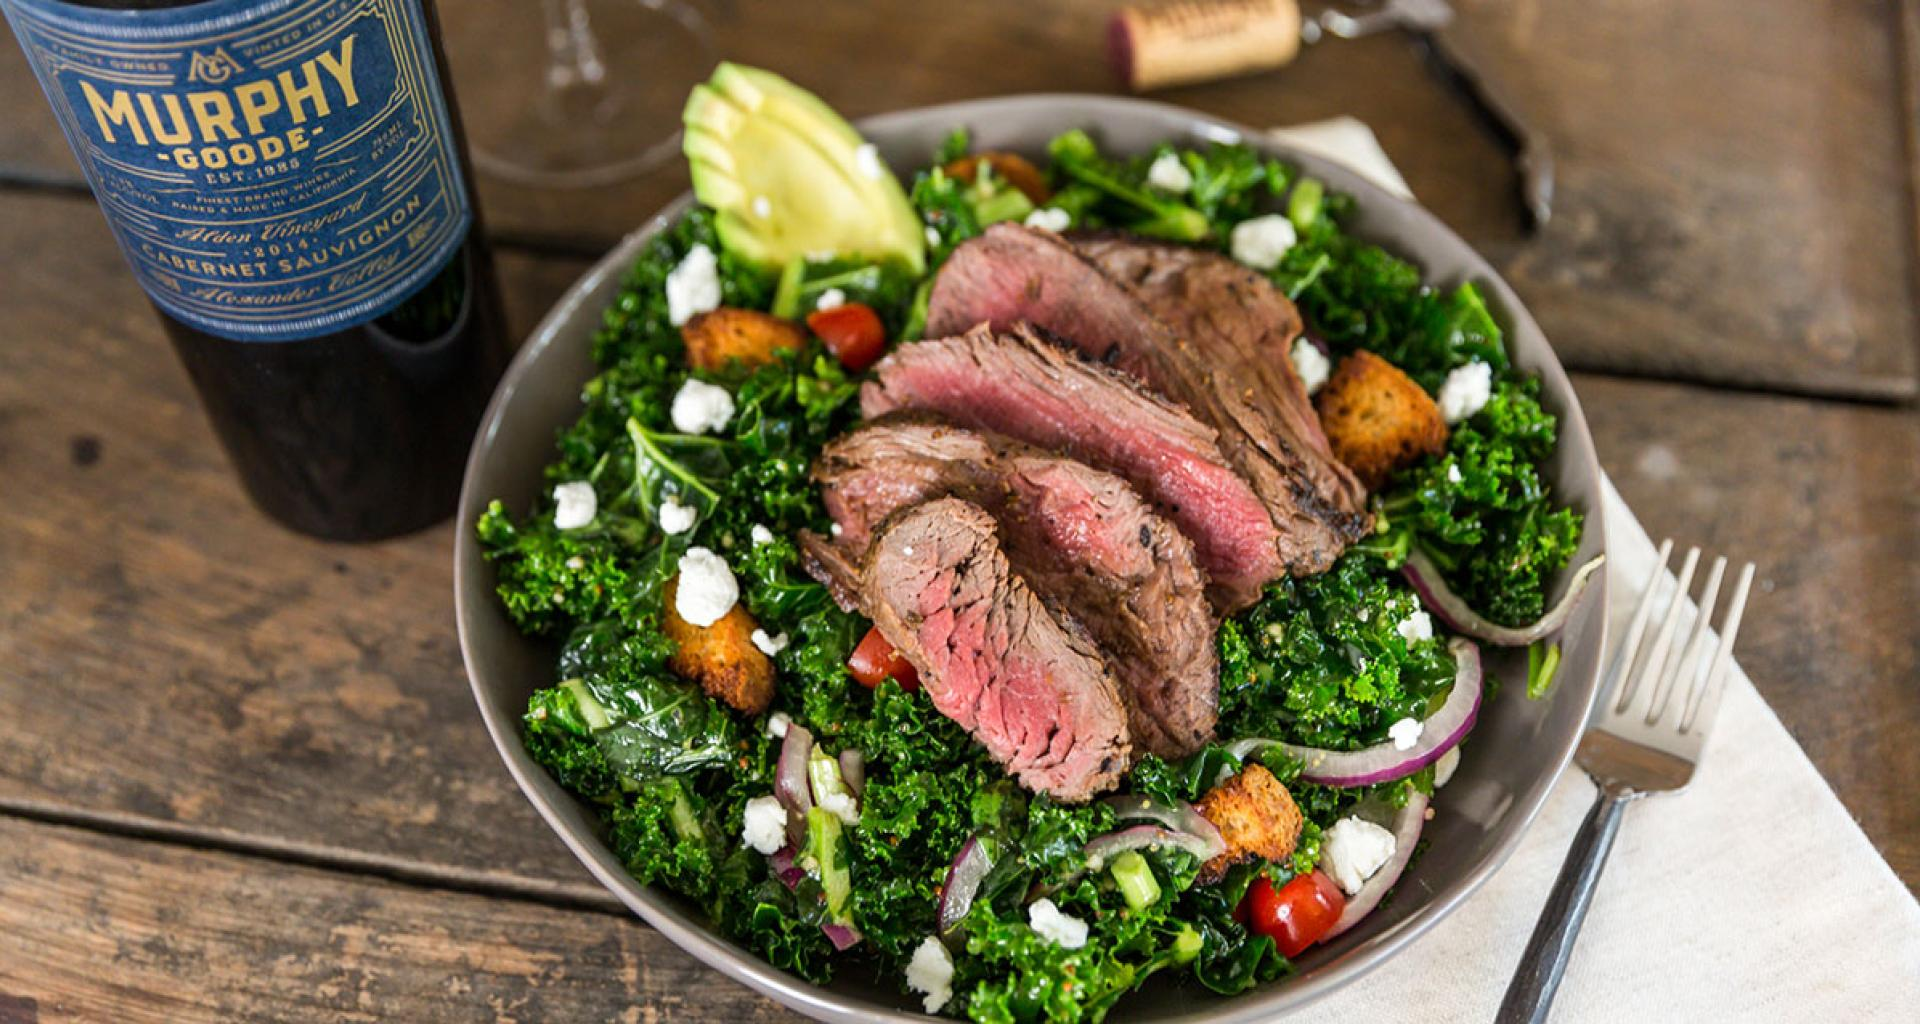 Enjoy a healthy take on fall flavors with this marinated spinach and kale steak bowl.